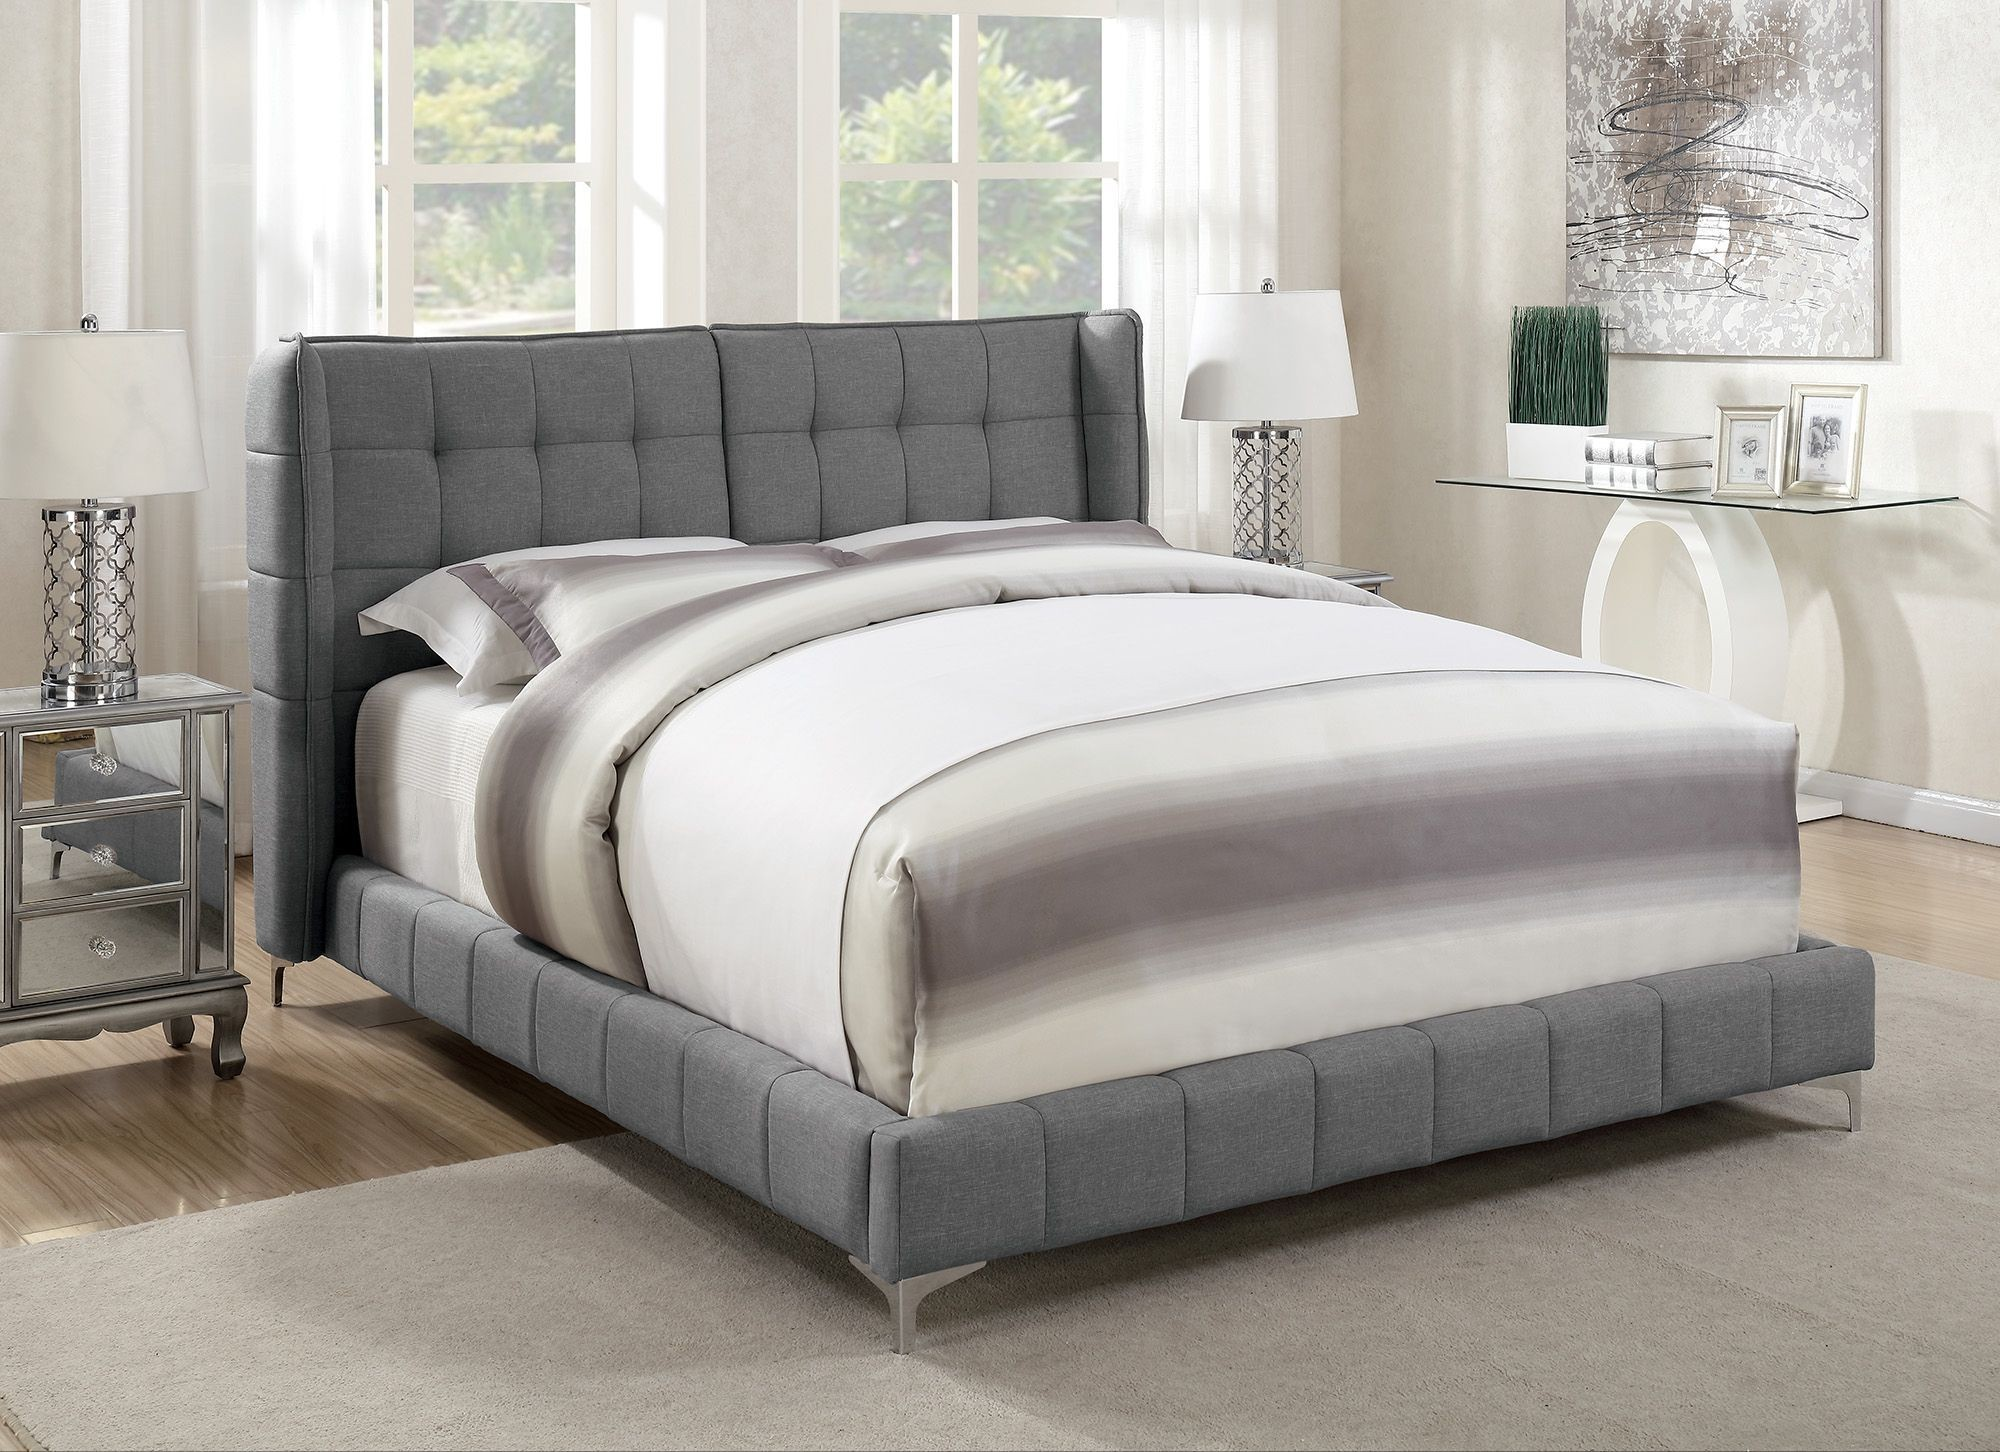 Goleta Light Gray King Upholstered Platform Bed From